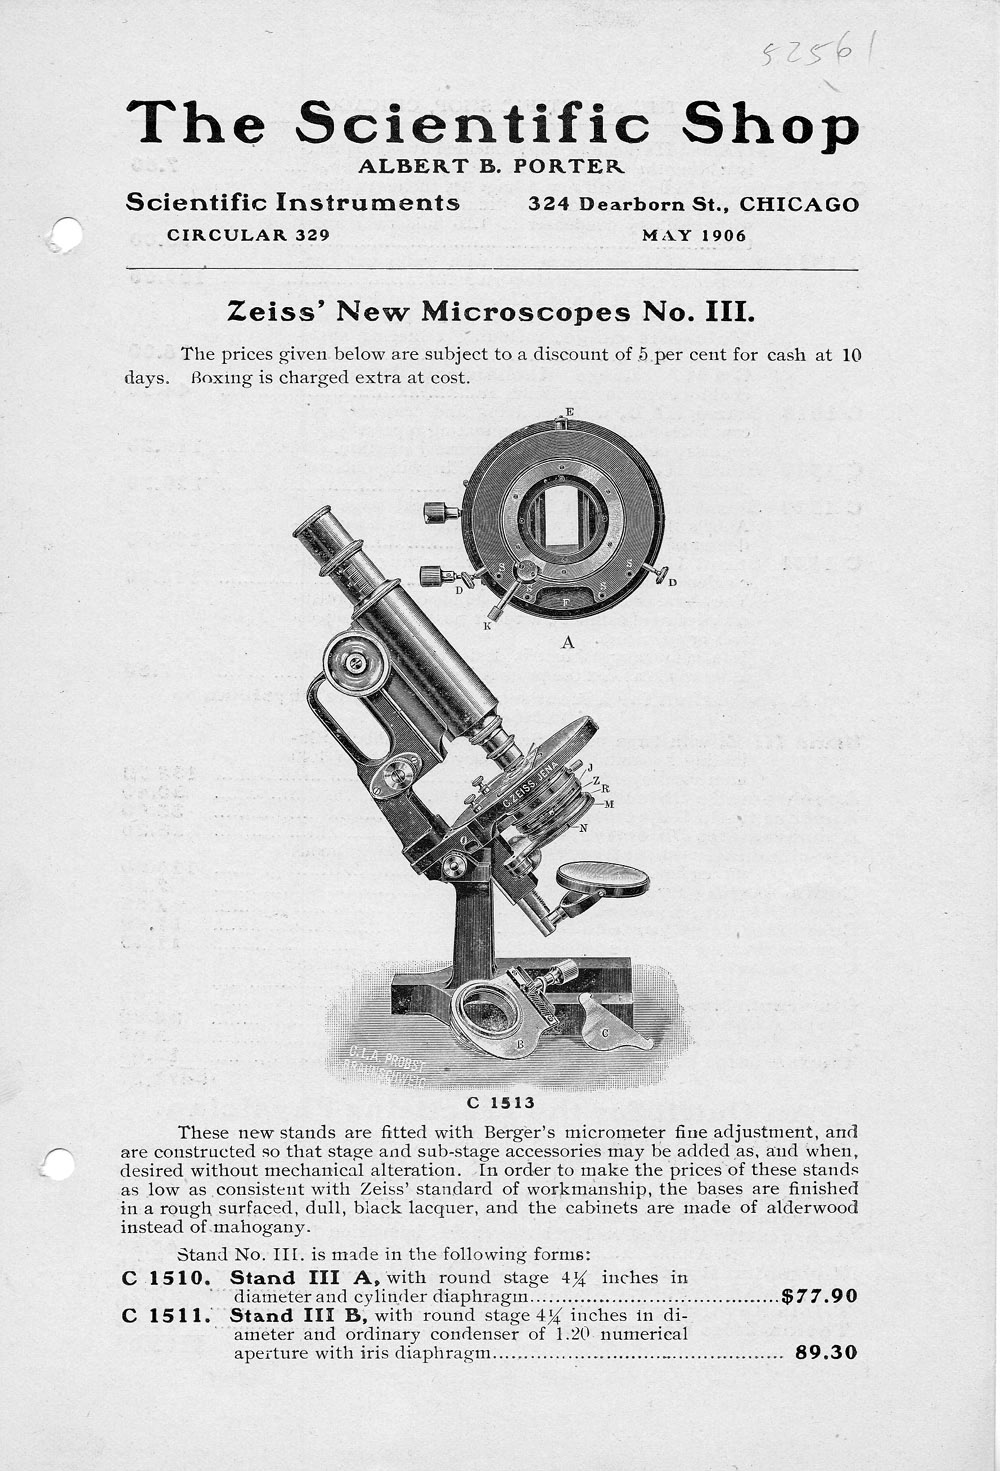 Zeiss' New Microscopes No. III,  Image number:SIL14-52561-0001